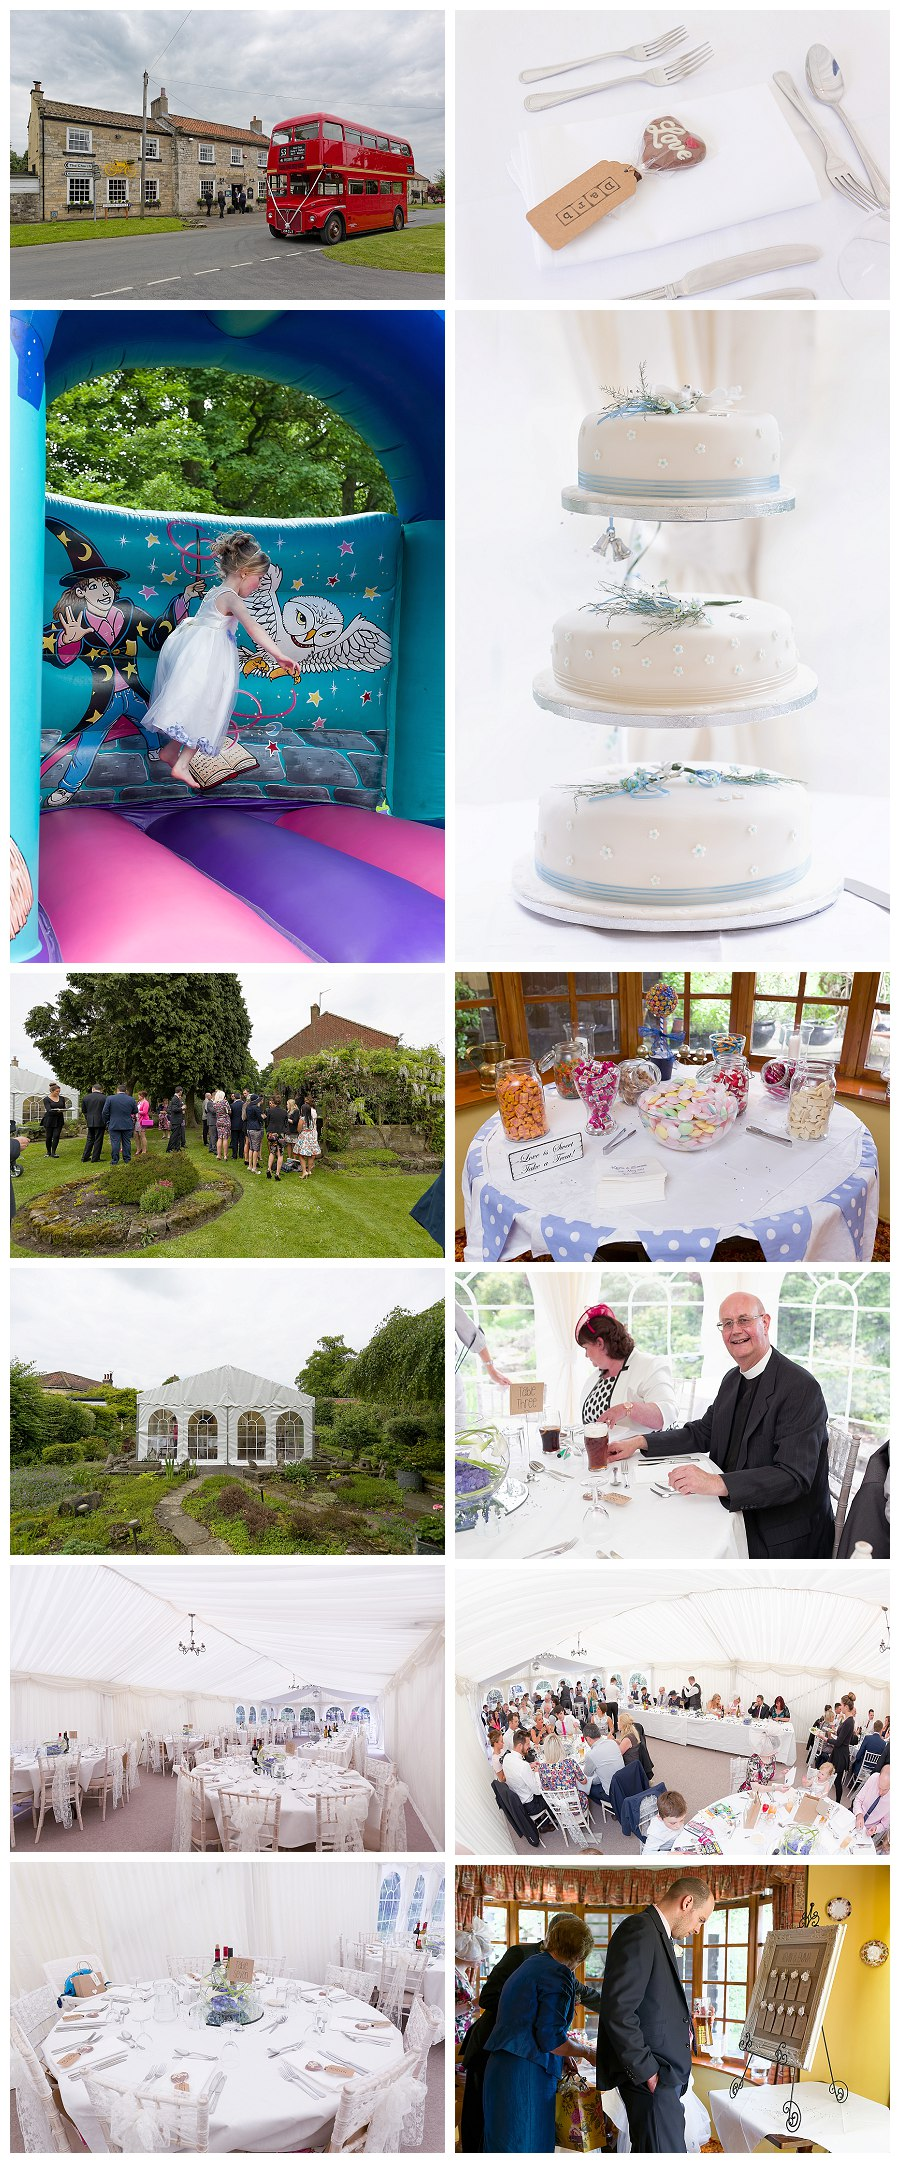 Wedding Photographers Yorkshire, wedding photography bay horse goldsborough